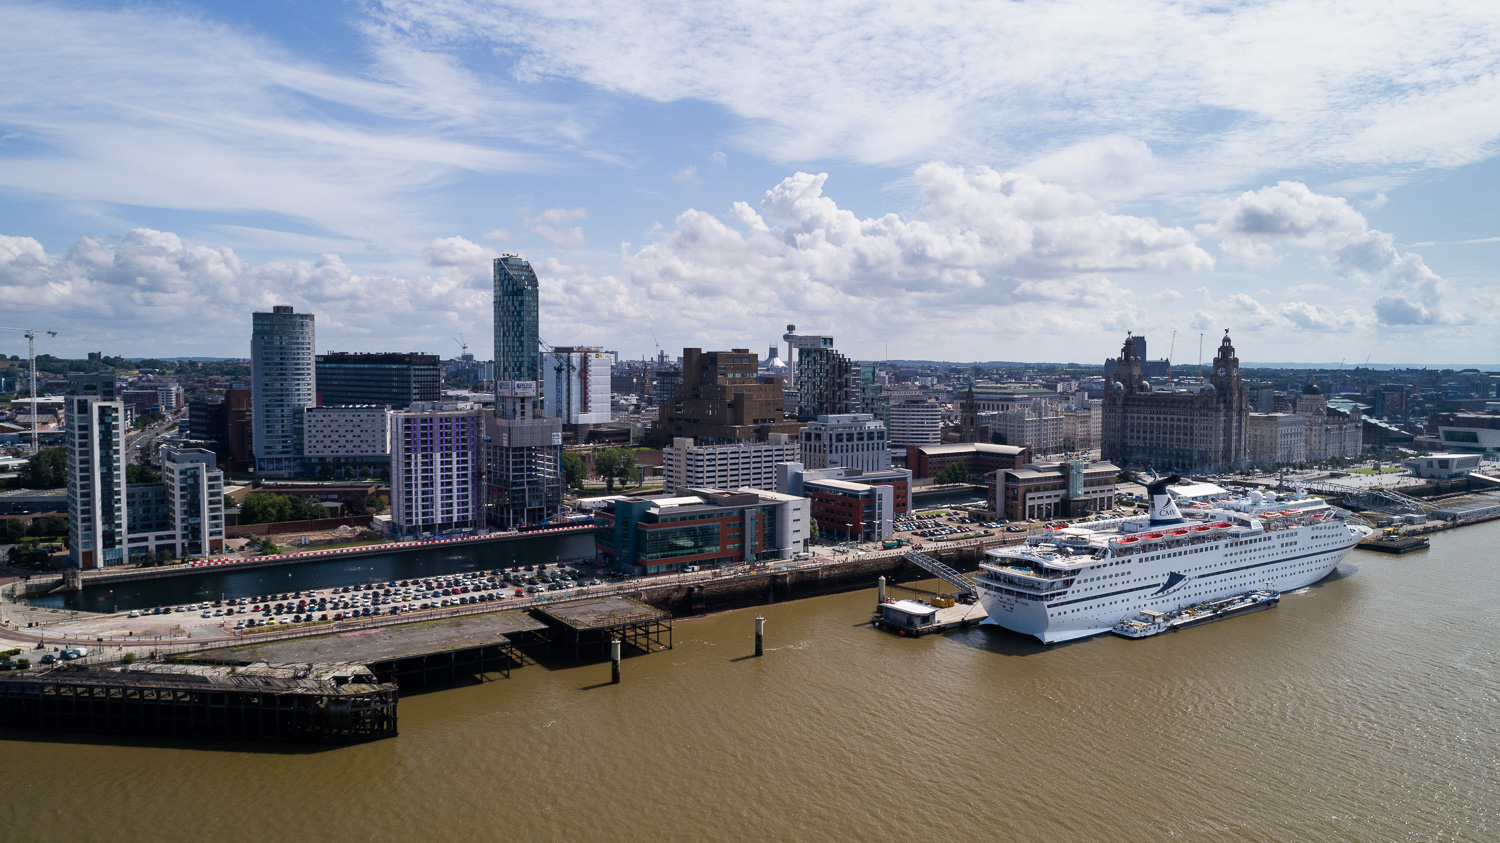 Liverpool Docks_08 08 2019_2_©Matthew Nichol Photography.jpg